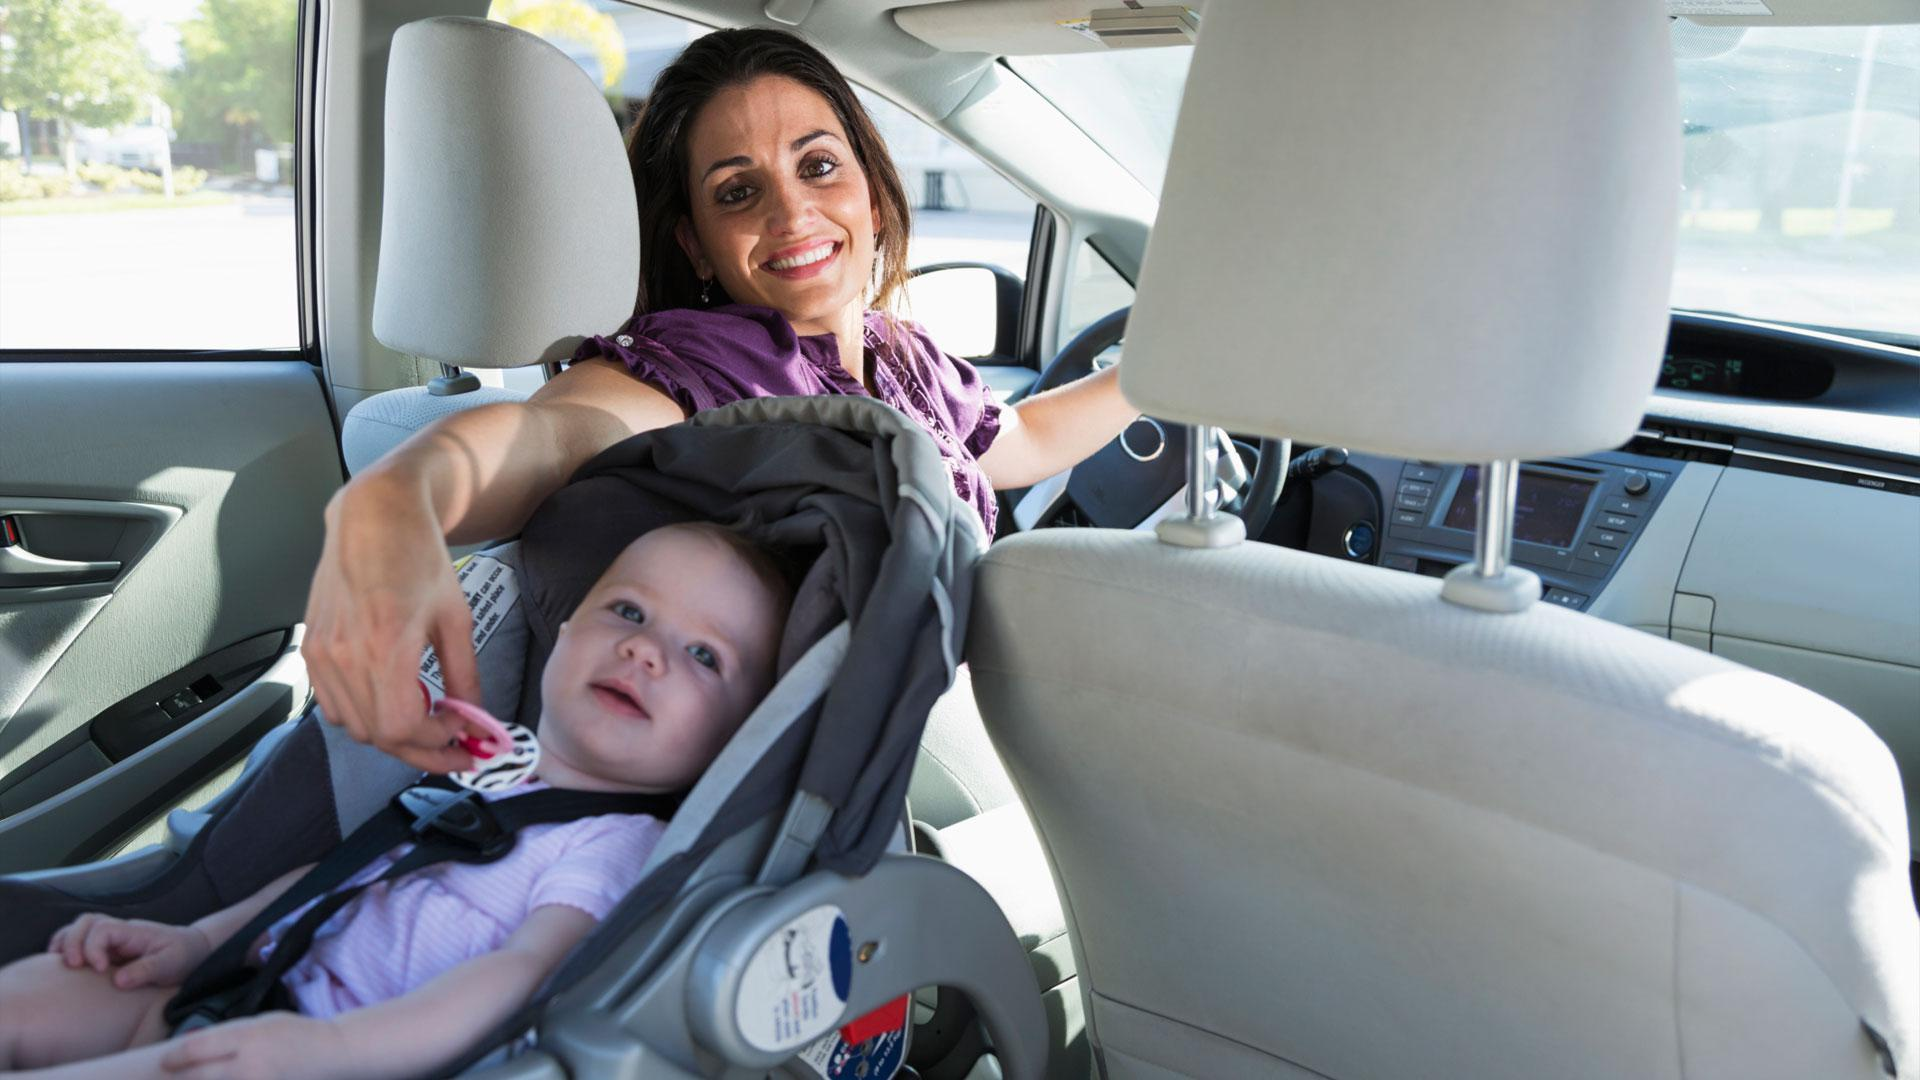 Help! My child's choking and we're stuck in traffic